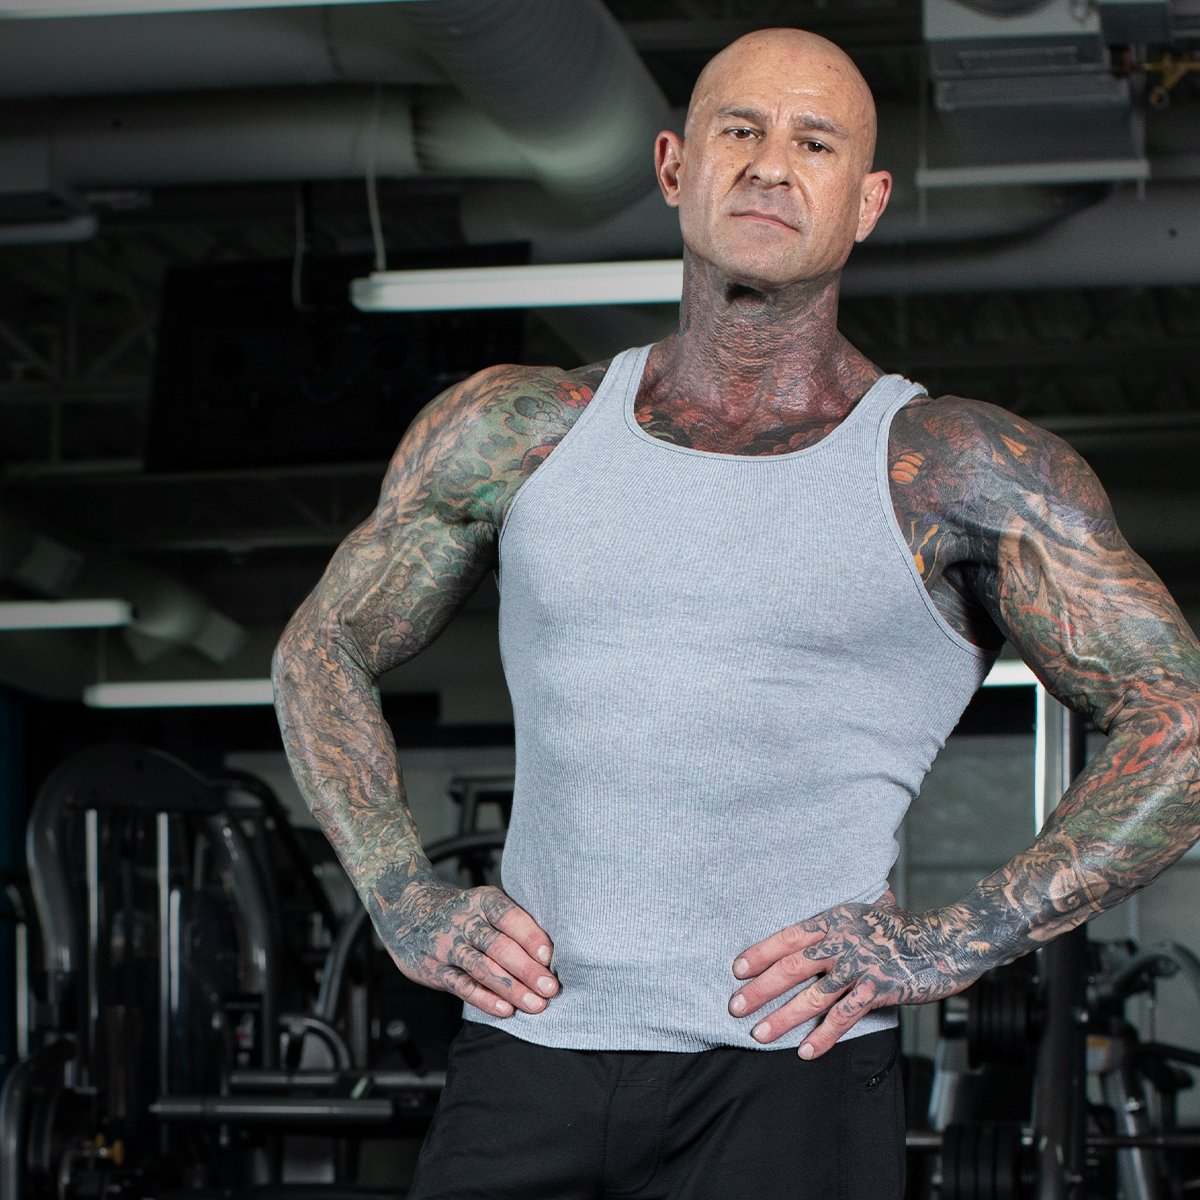 Alternating Rest-Pause by Jim Stoppani